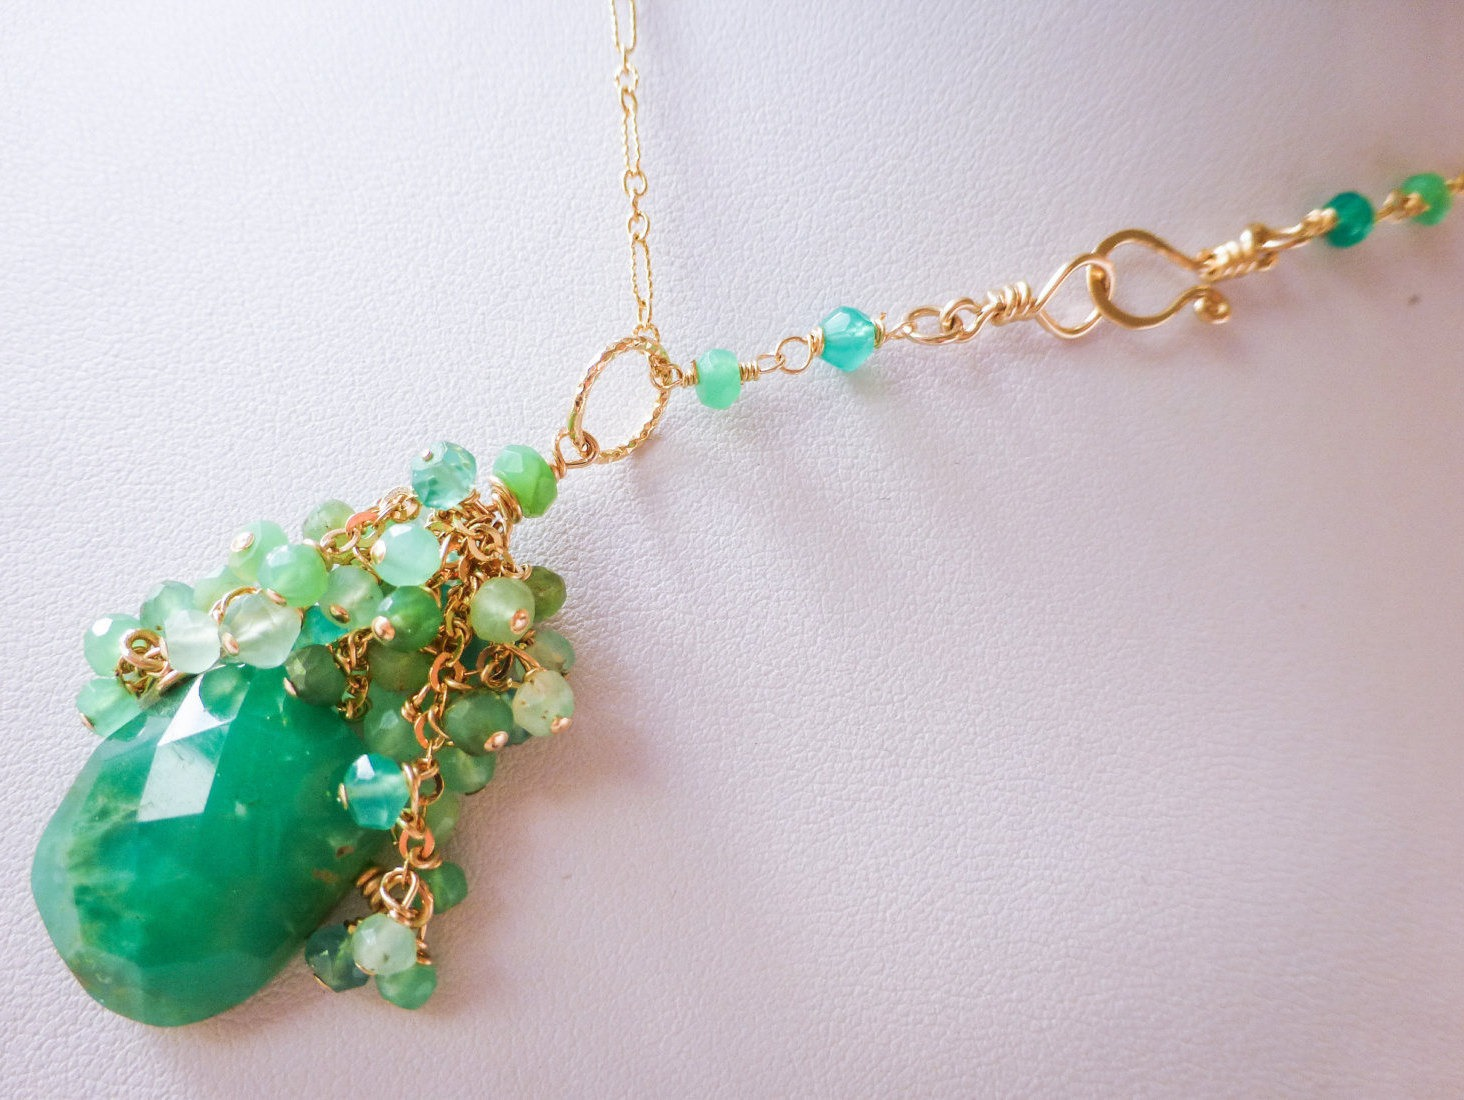 green gold design necklace filled in valltasy rosary chrysoprase statement